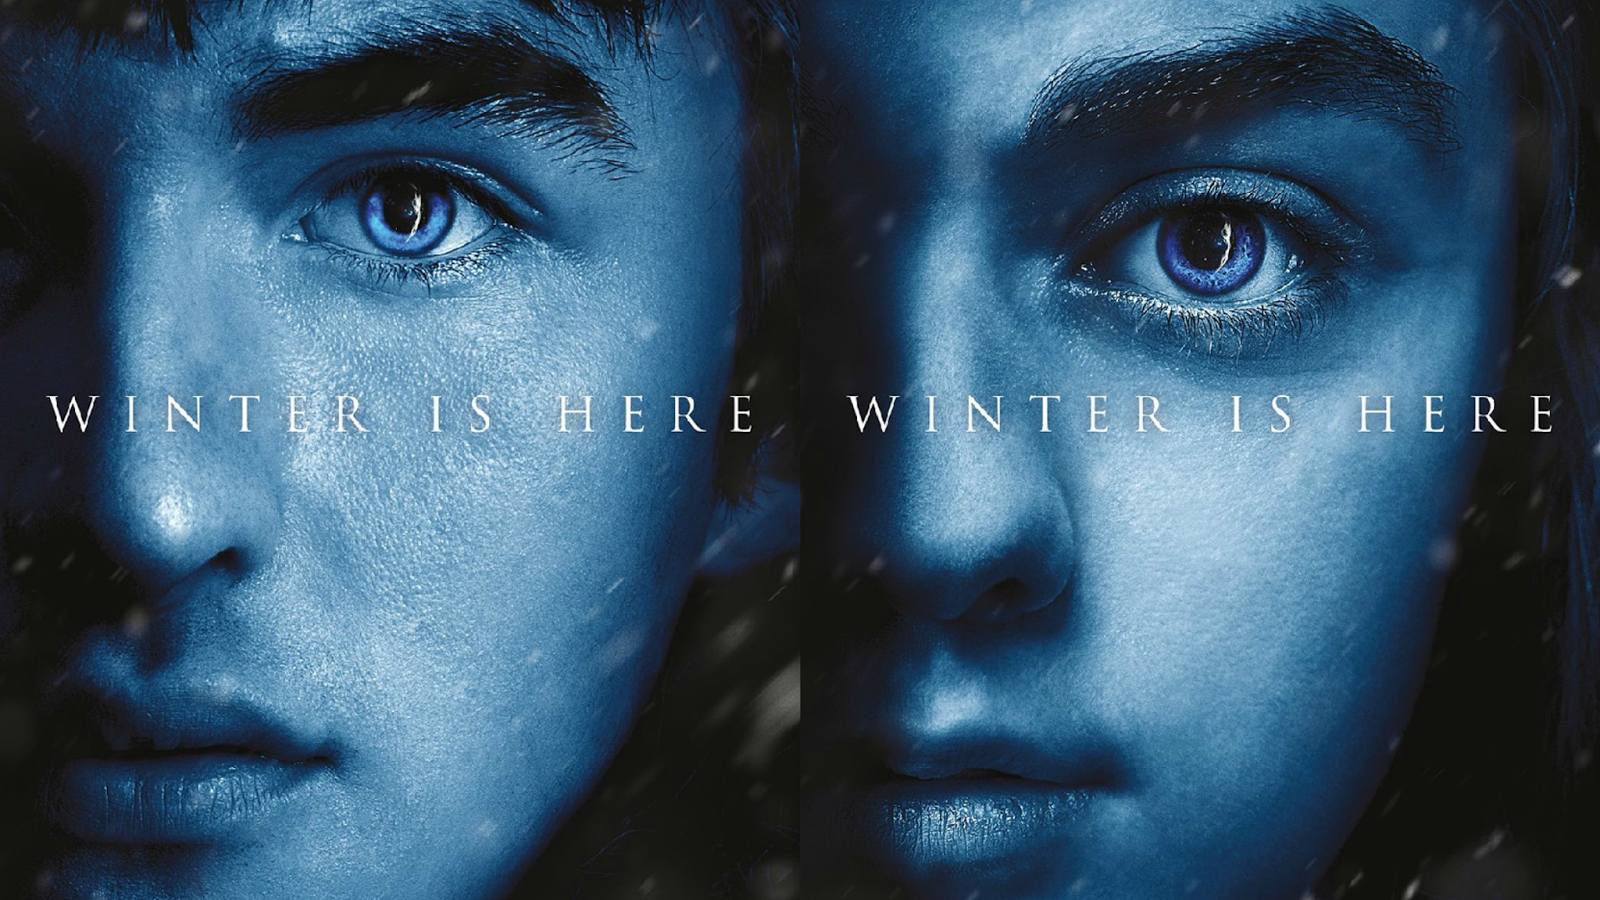 Character Posters for Arya and Bran Stark for Game of Thrones Season 7